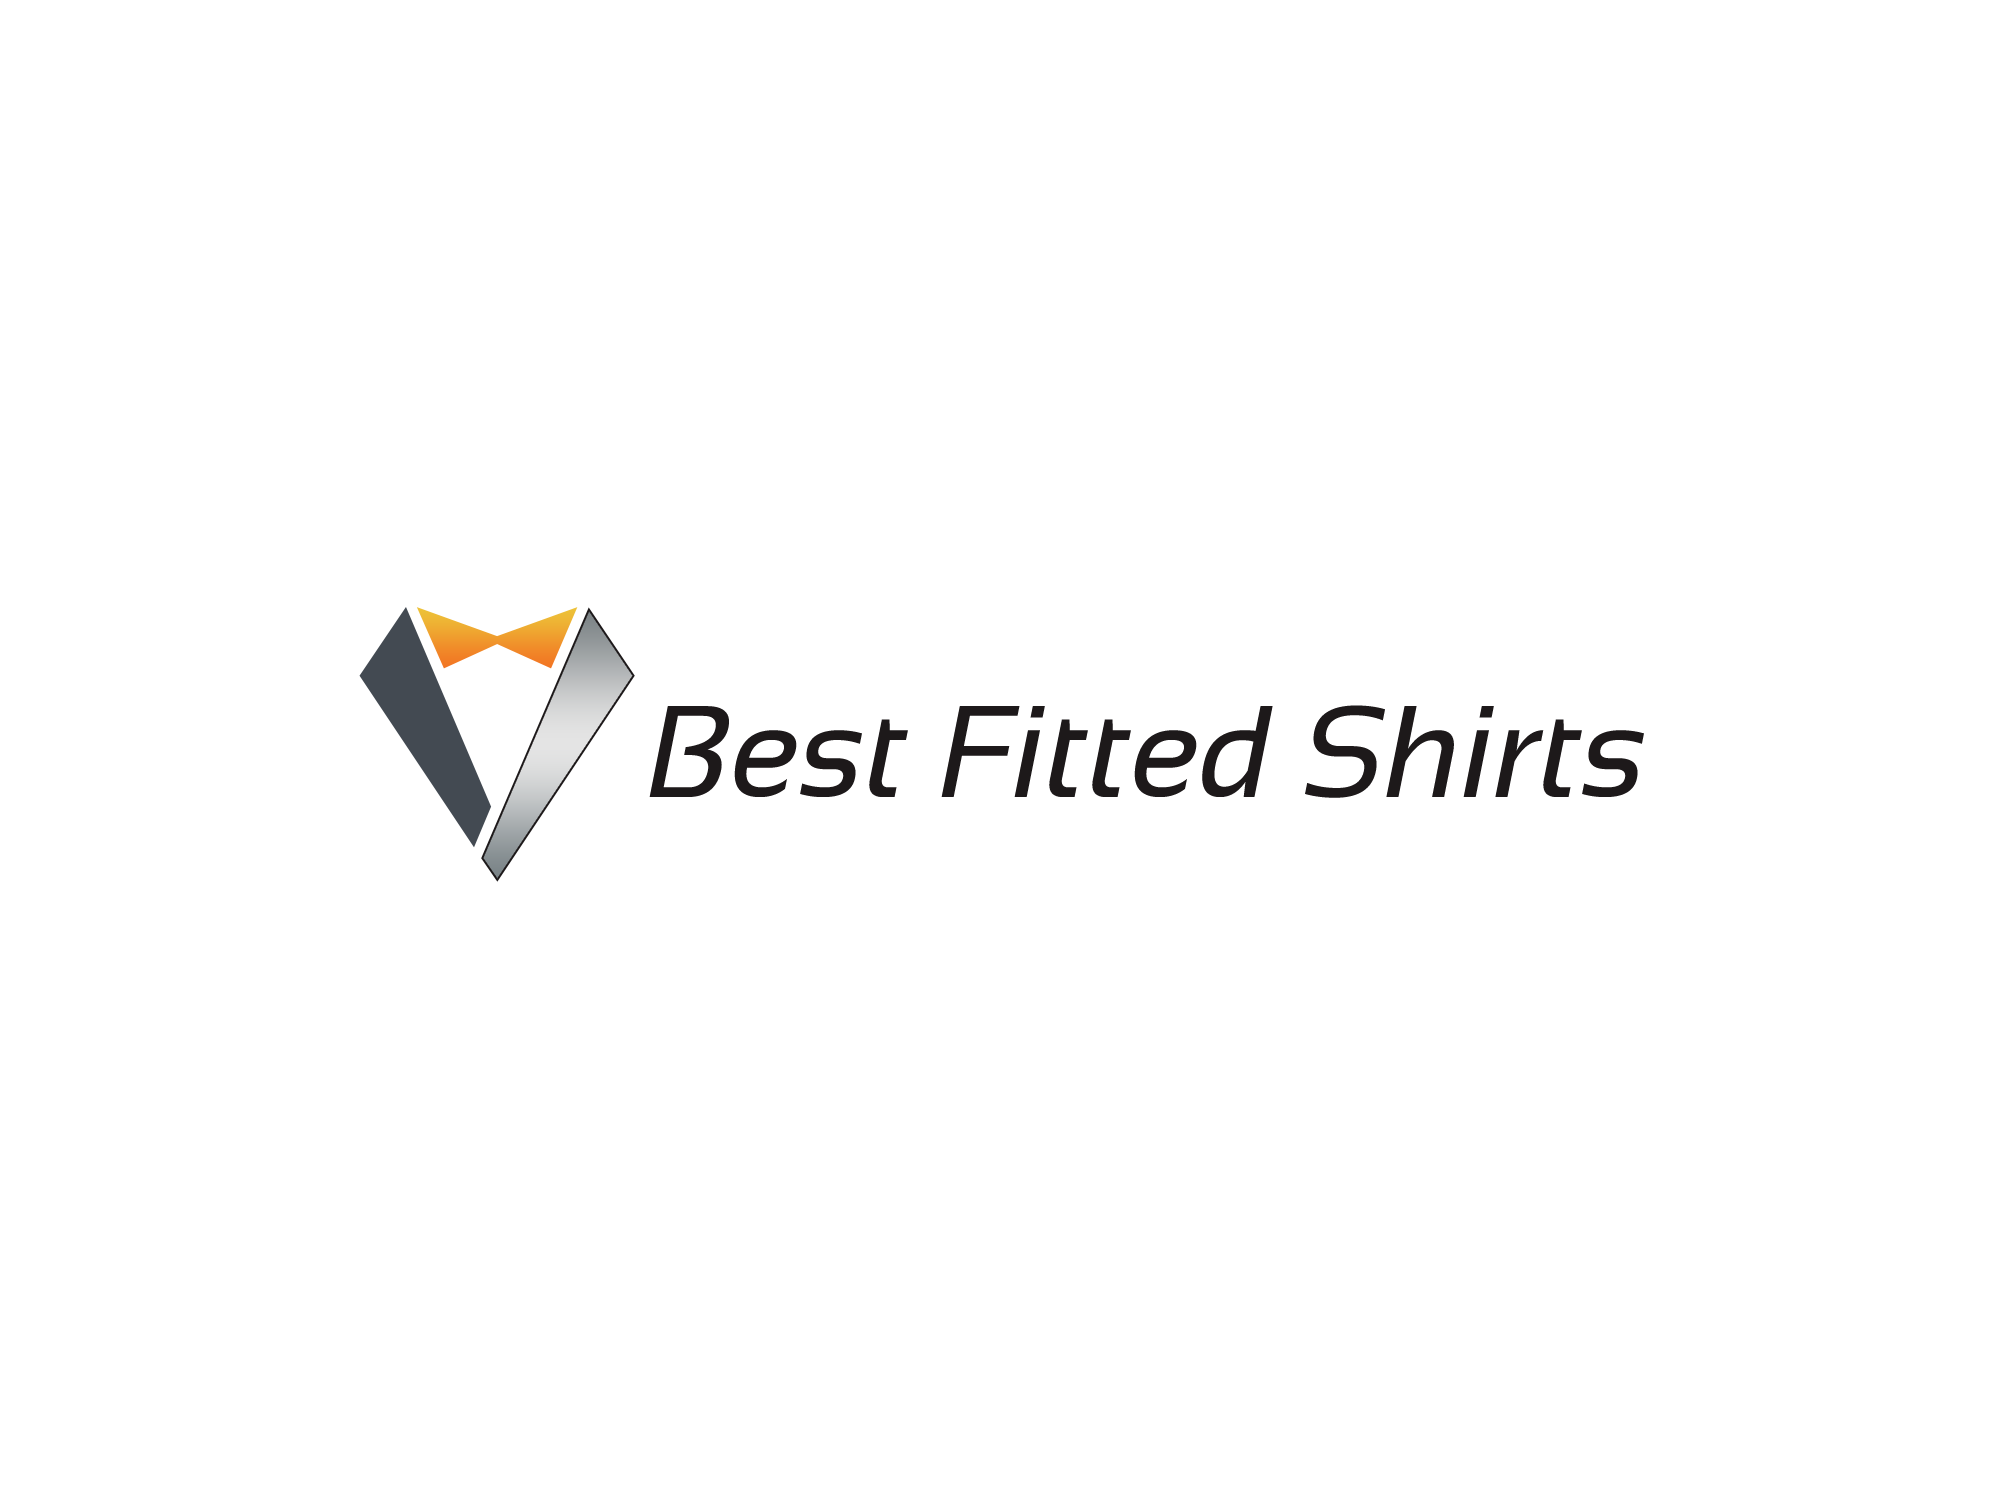 Best Fitted Shirts.com Logo!